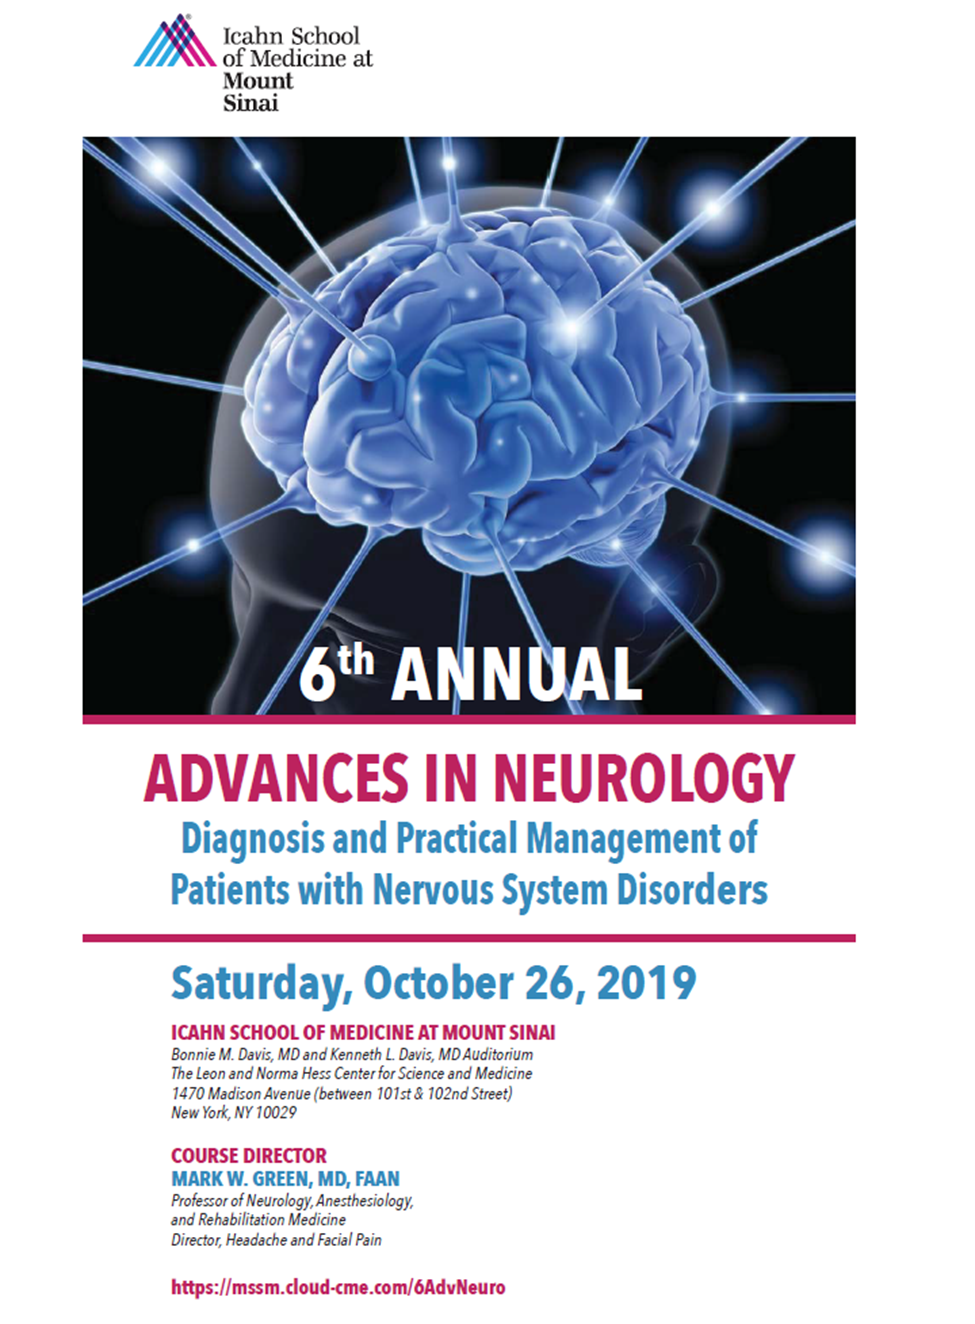 6th Annual Advances in Neurology: Diagnosis and Practical Management of Patients with Nervous System Disorders Banner